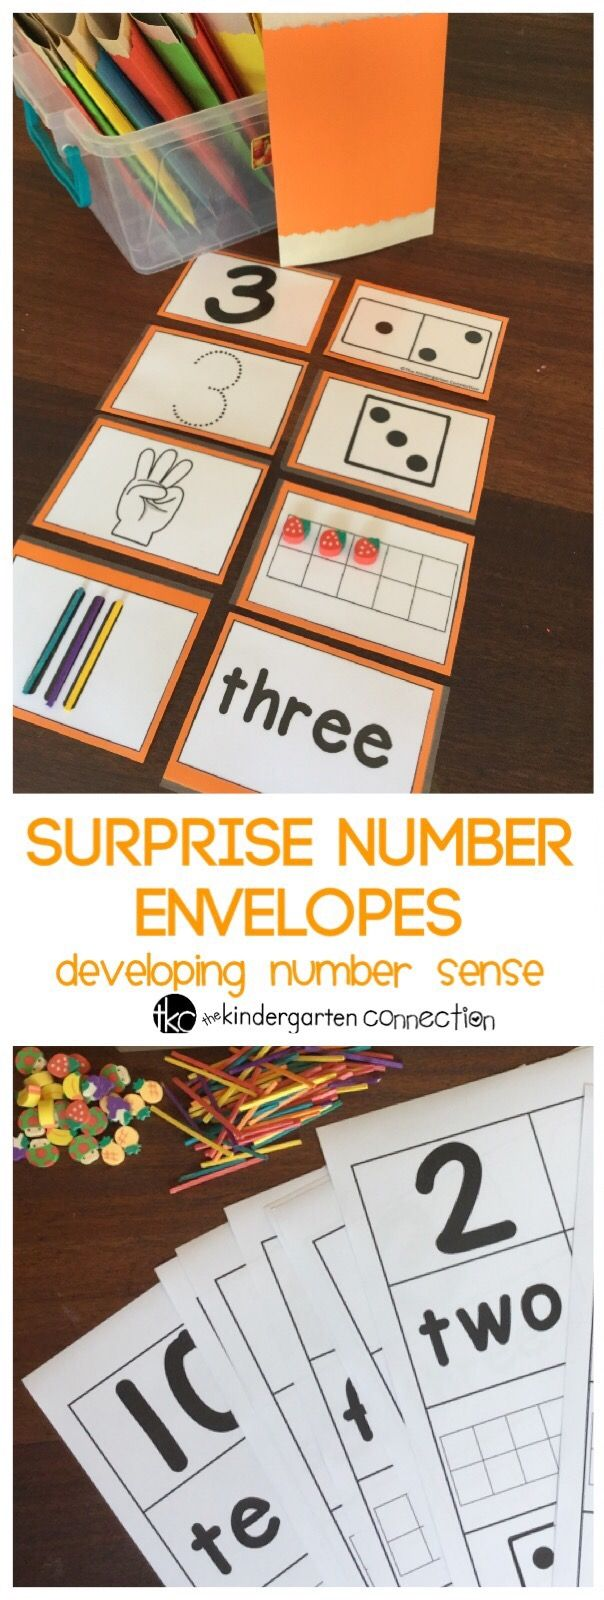 Build number sense and work on skills like number identification, counting…